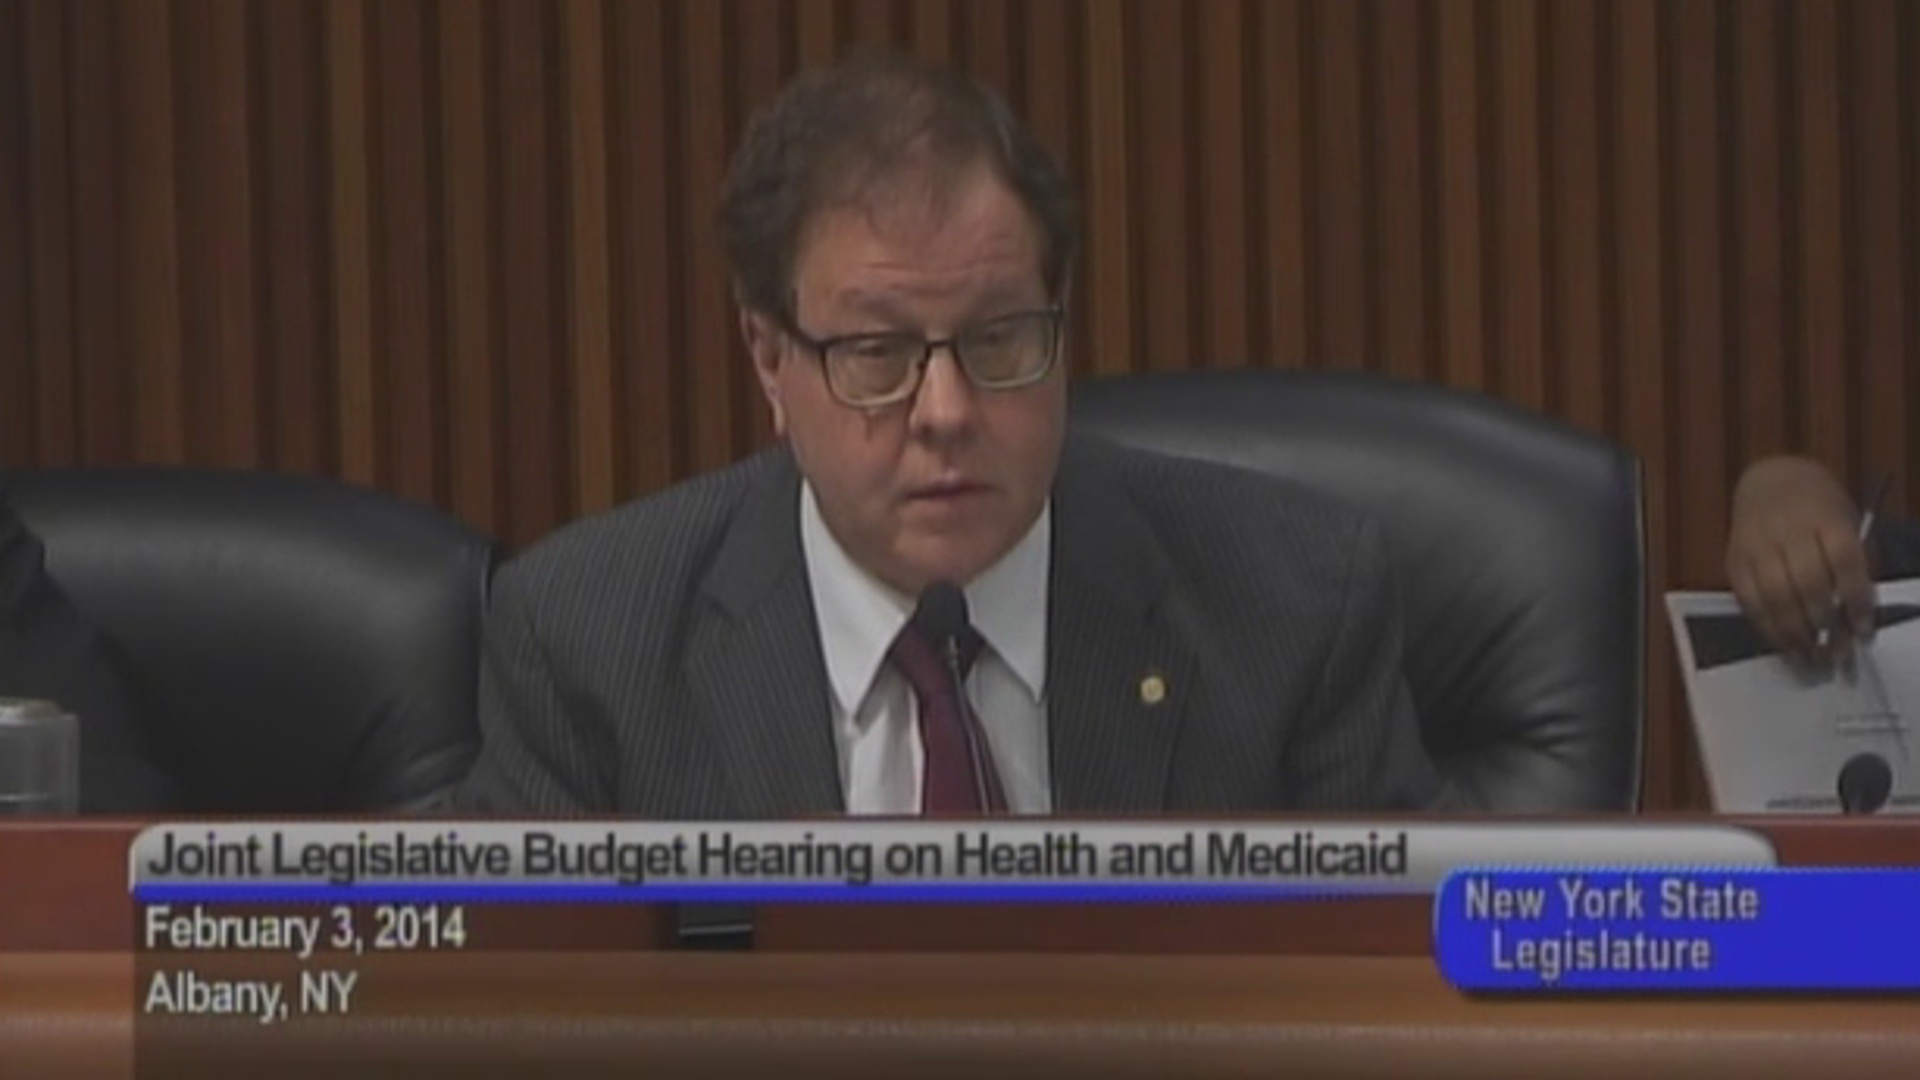 2014 Budget Hearing on Health